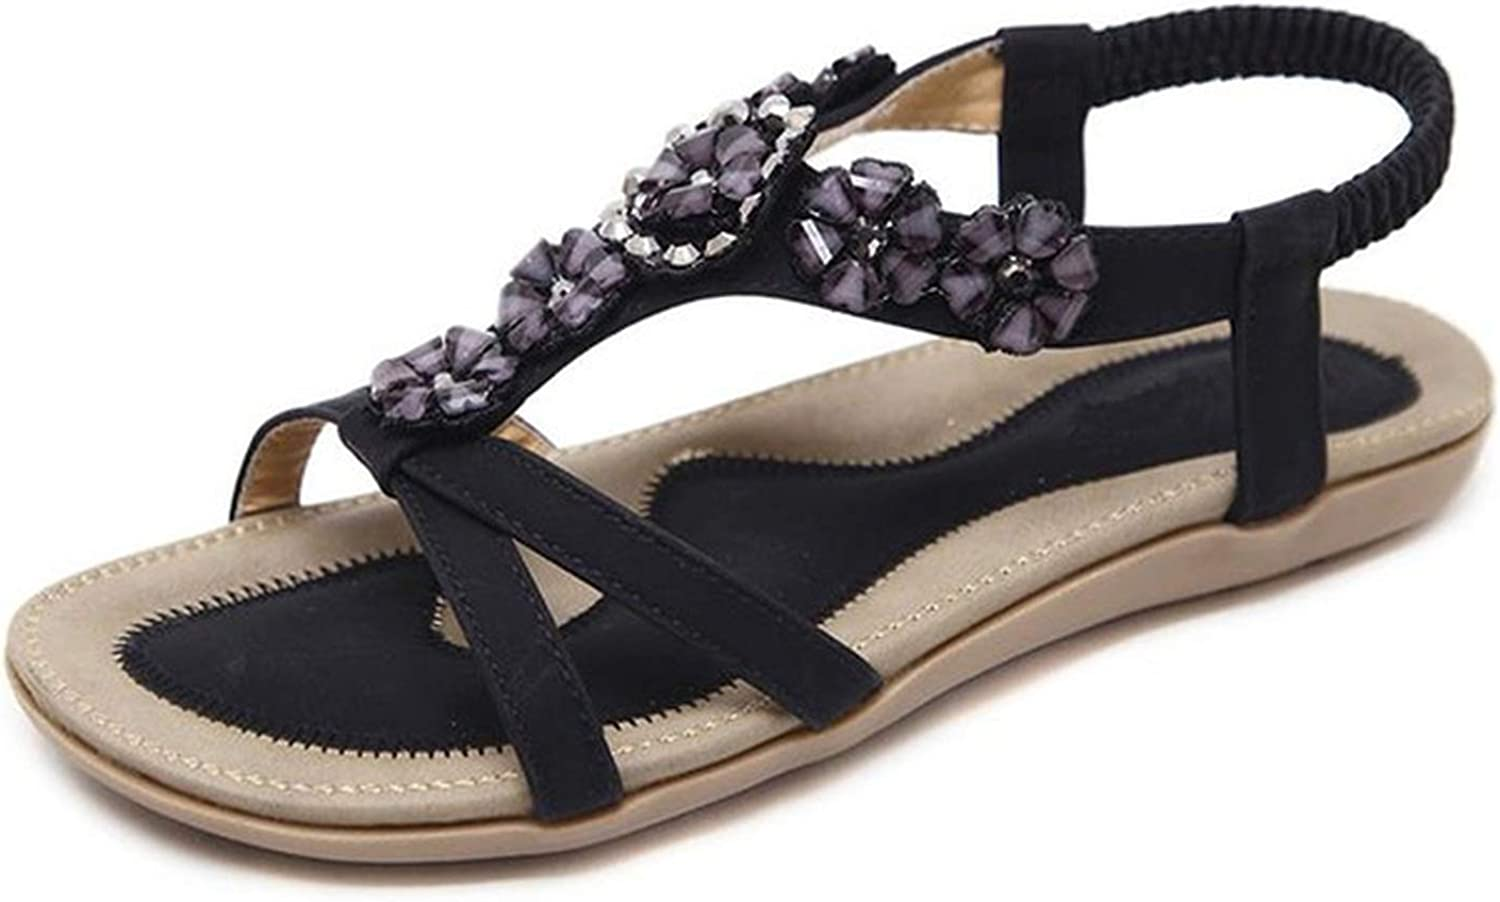 Luuvy-shop sandal Bohemian Summer shoes Sweet Womens Flowers Flat Sandals Rhinestones Casual Flats